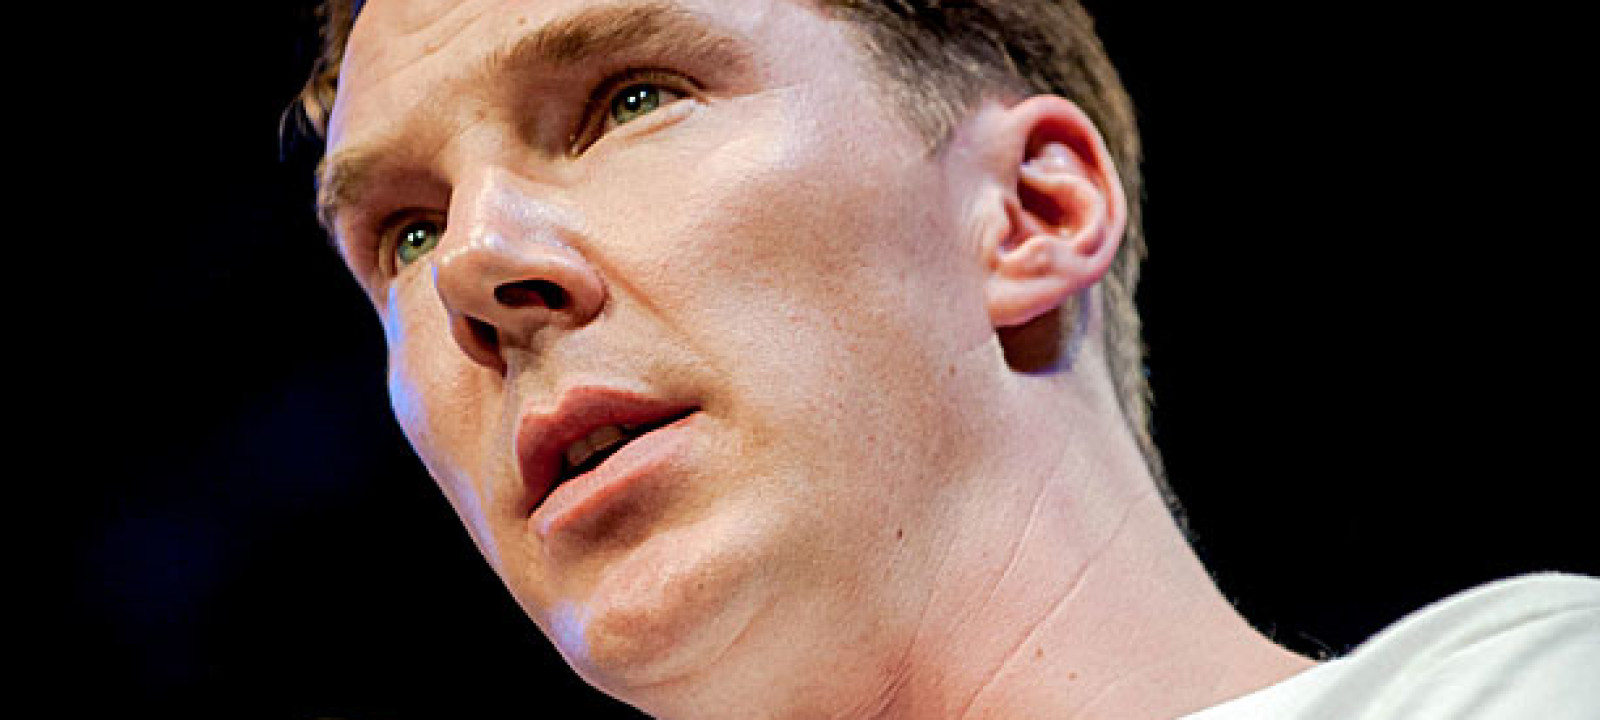 Benedict Cumberbatch at the Hay Festival